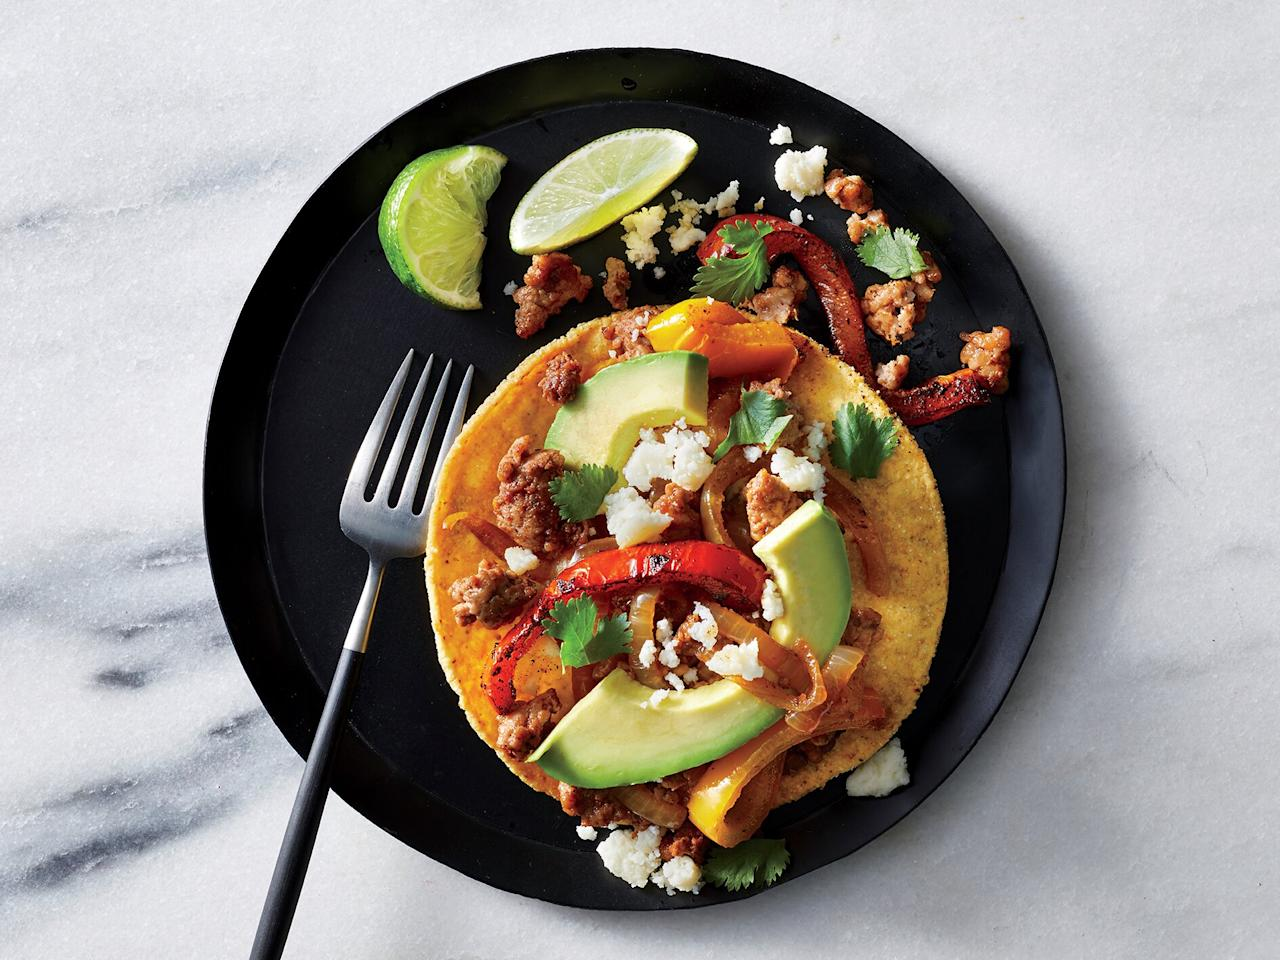 "<p>Uncured Mexican chorizo is raw ground pork laced with garlic, cumin, oregano, and chile powder—not the dried, cured links. Try it on a baked potato, too.</p> <p><a href=""https://www.myrecipes.com/recipe/chorizo-and-bell-pepper-tostadas"">Chorizo and Bell Pepper Tostadas Recipe</a></p>"